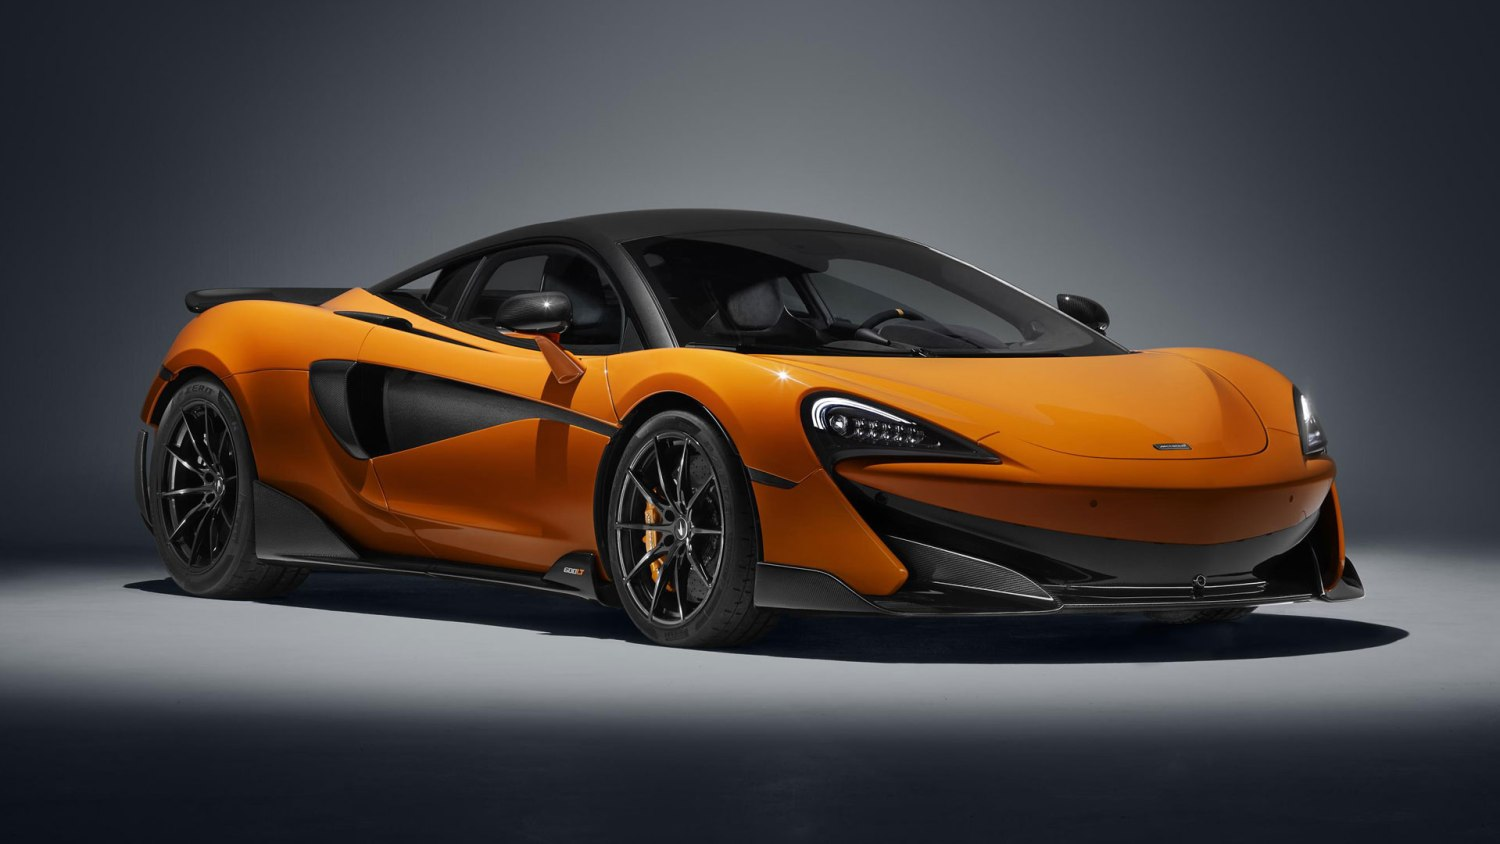 McLaren 600LT - greatest cars of the decade